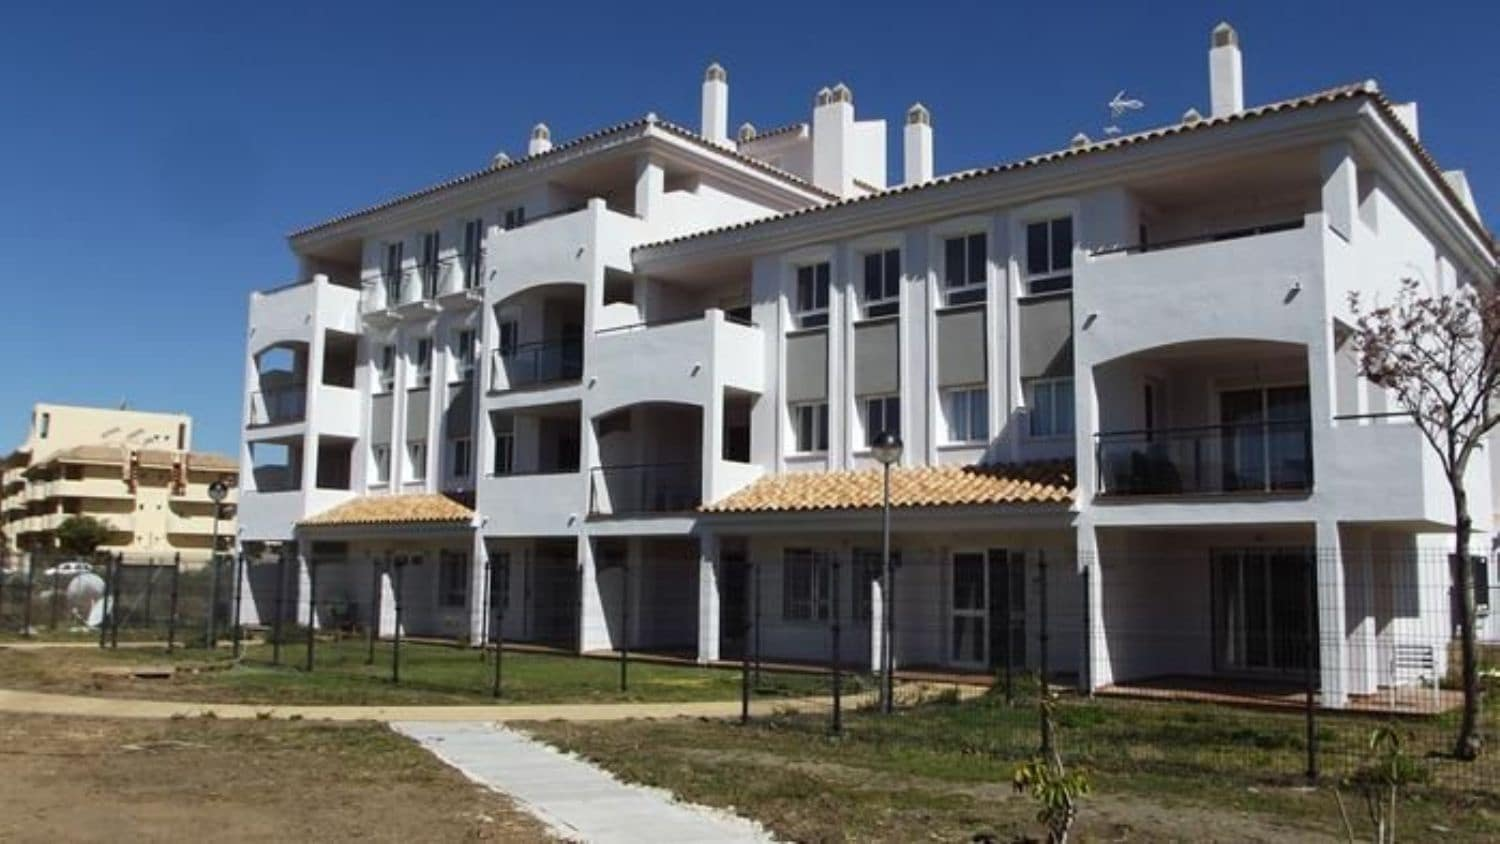 2 bedroom Flat for sale in Manilva with pool - € 144,000 (Ref: 5188110)